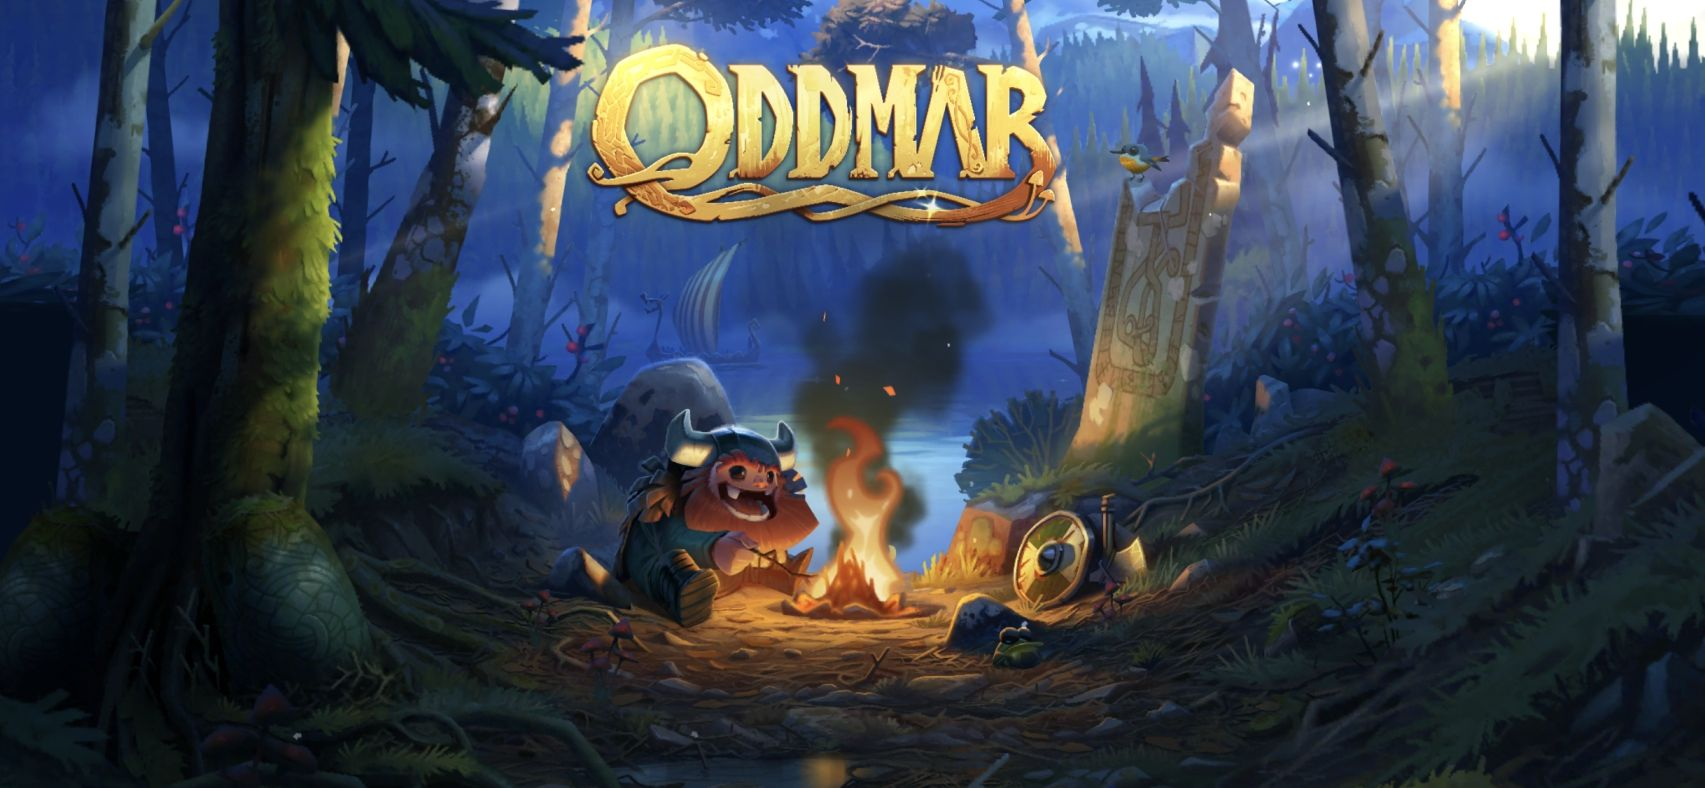 Oddmar (copie d'écran 1 sur iPhone / iPad)